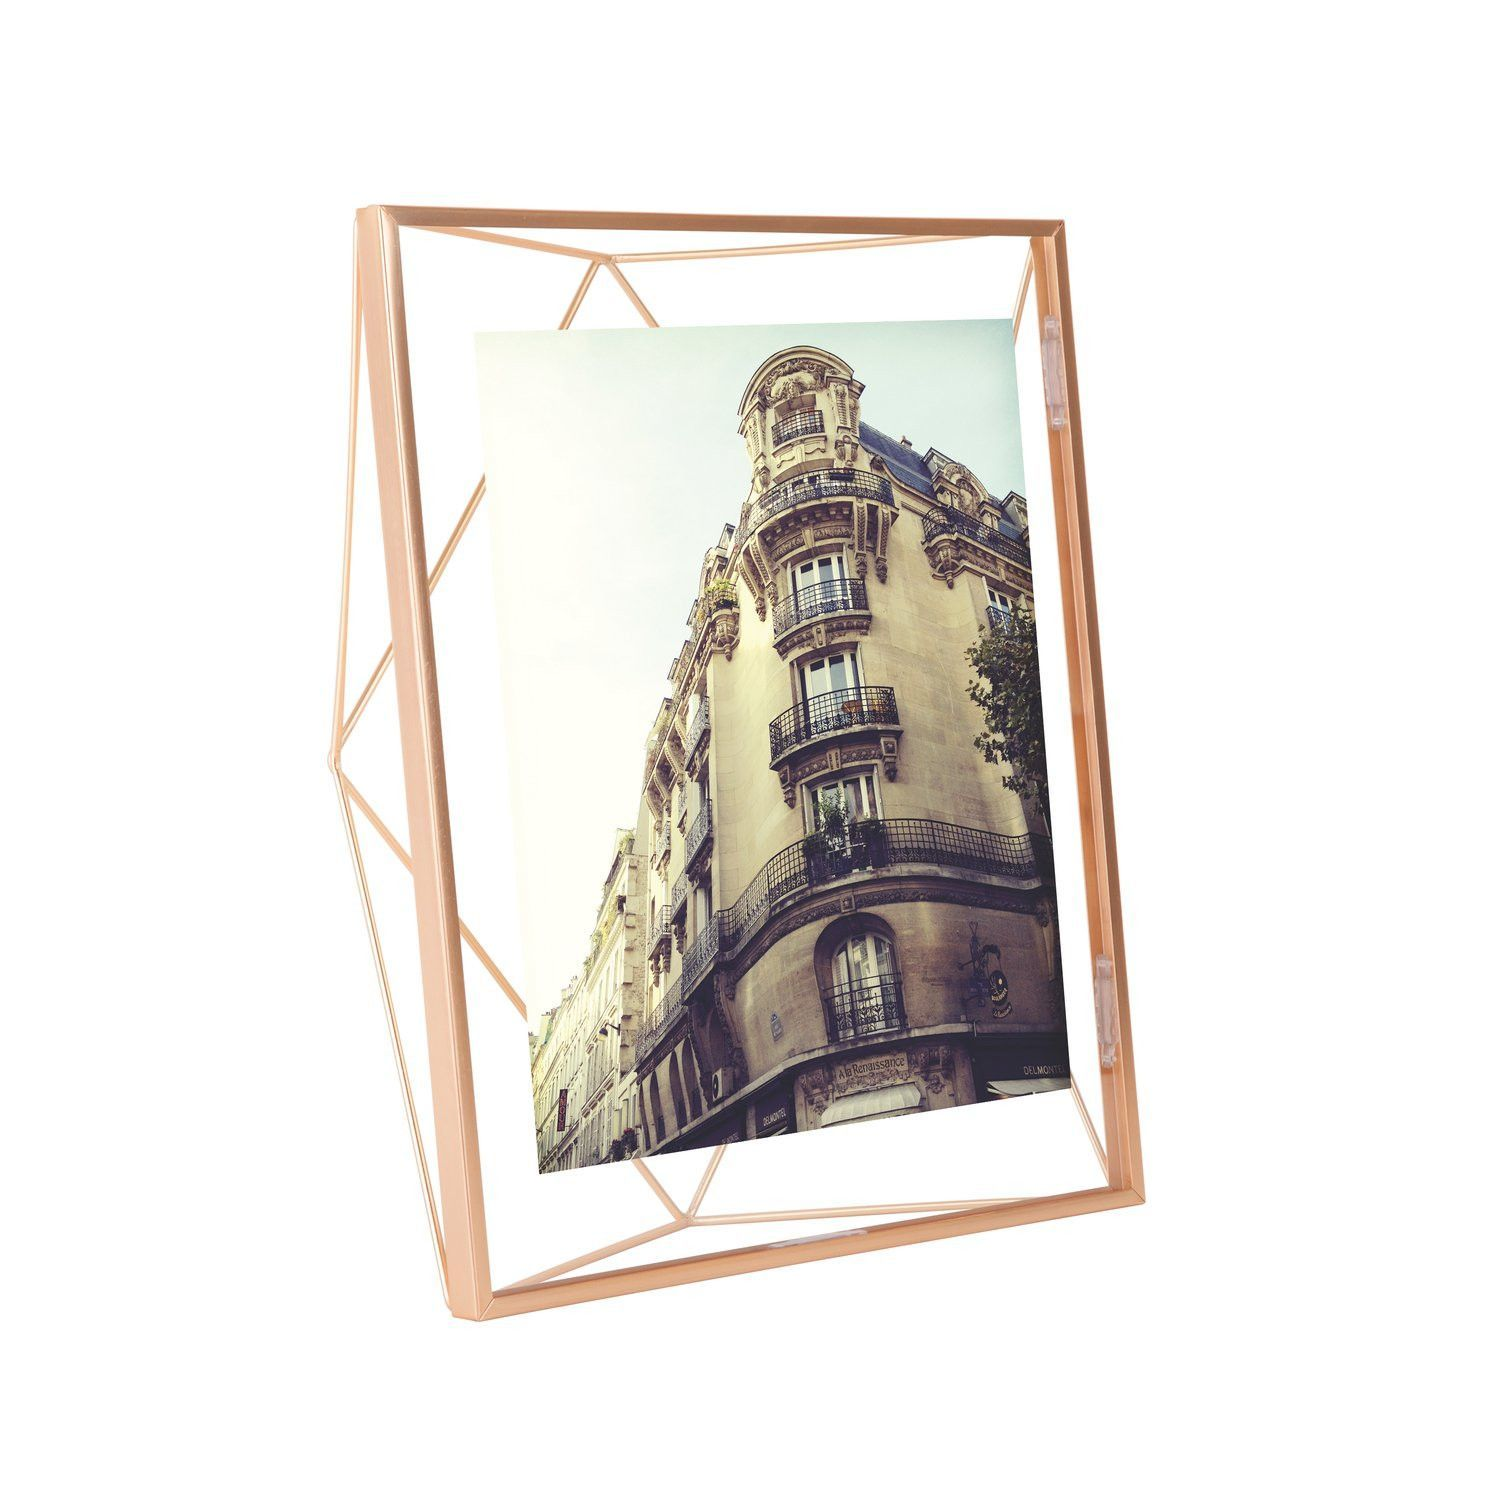 Prisma Frame 8x10 in Copper design by Umbra | Products | Pinterest